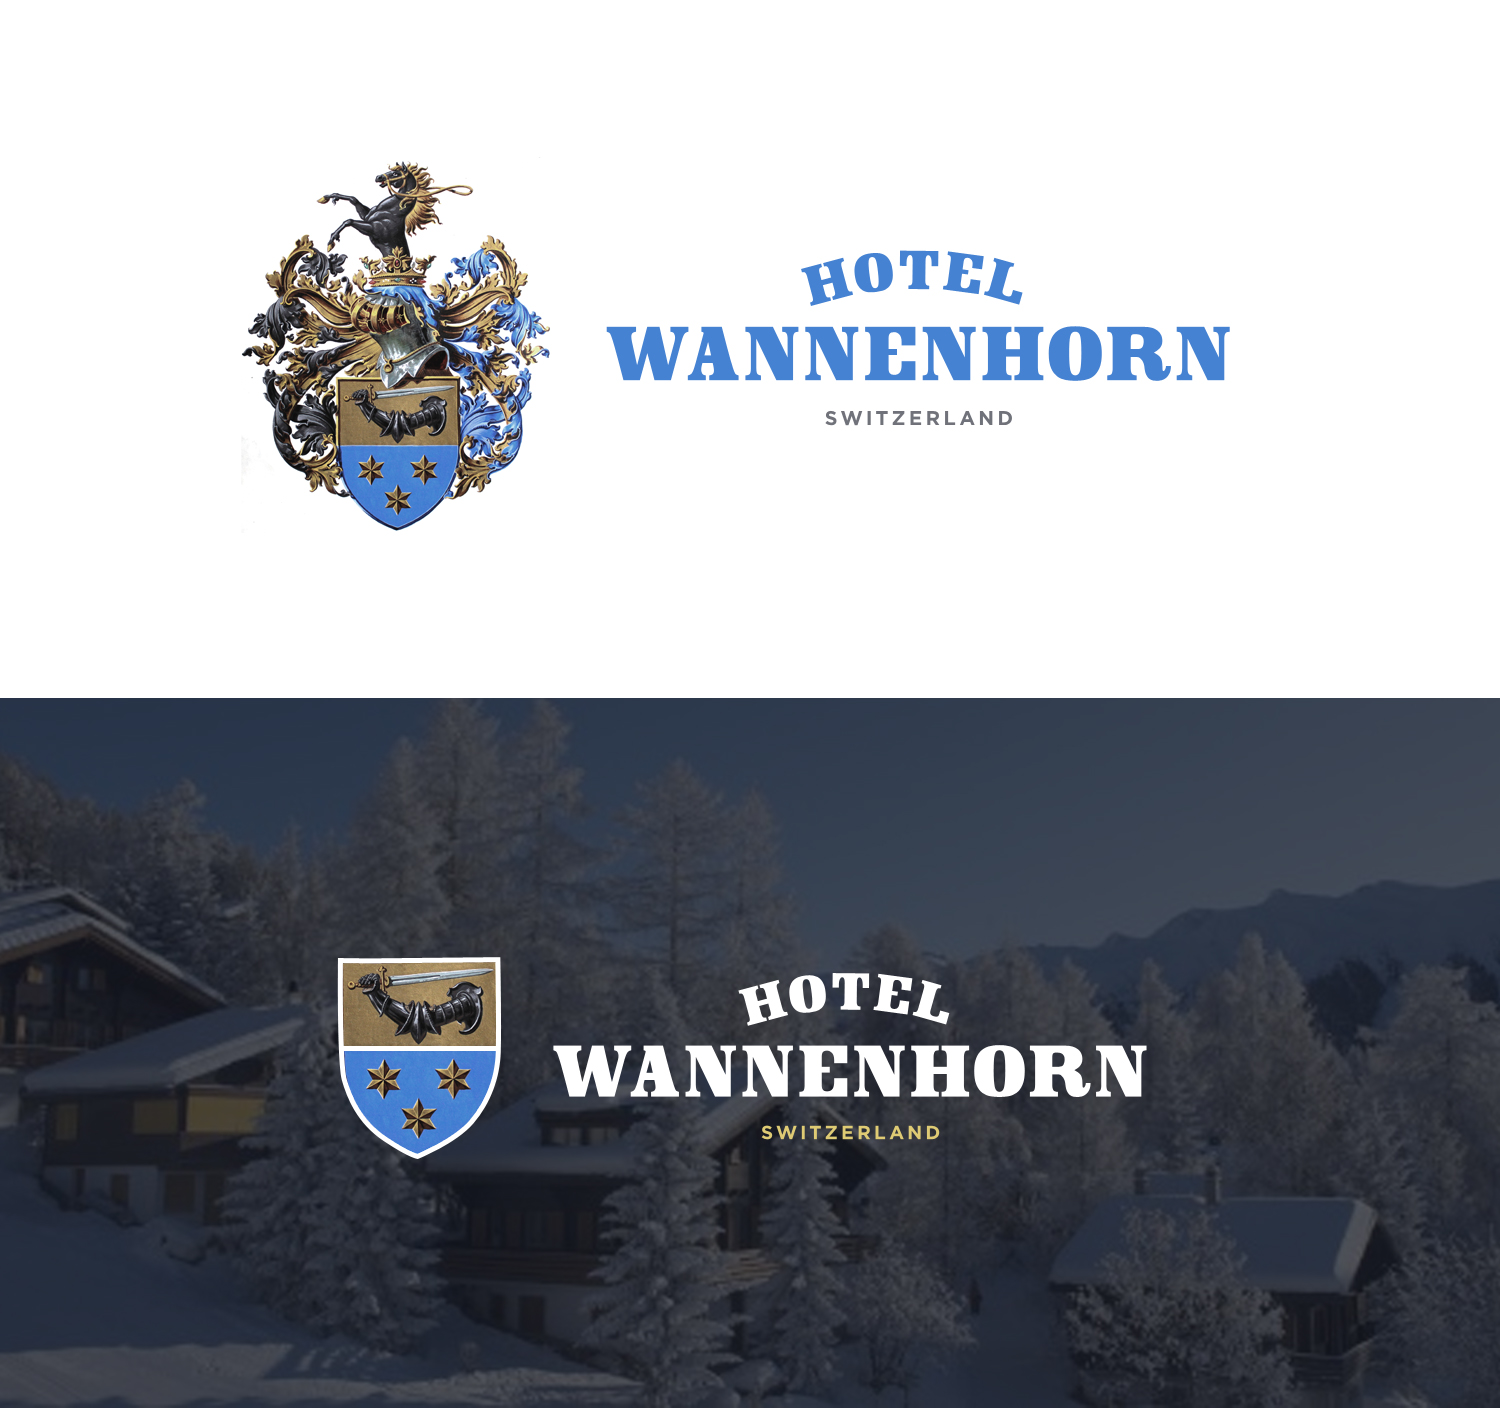 Hotel Wannenhorn Logo Design with Coat of Arms by SMST Designs